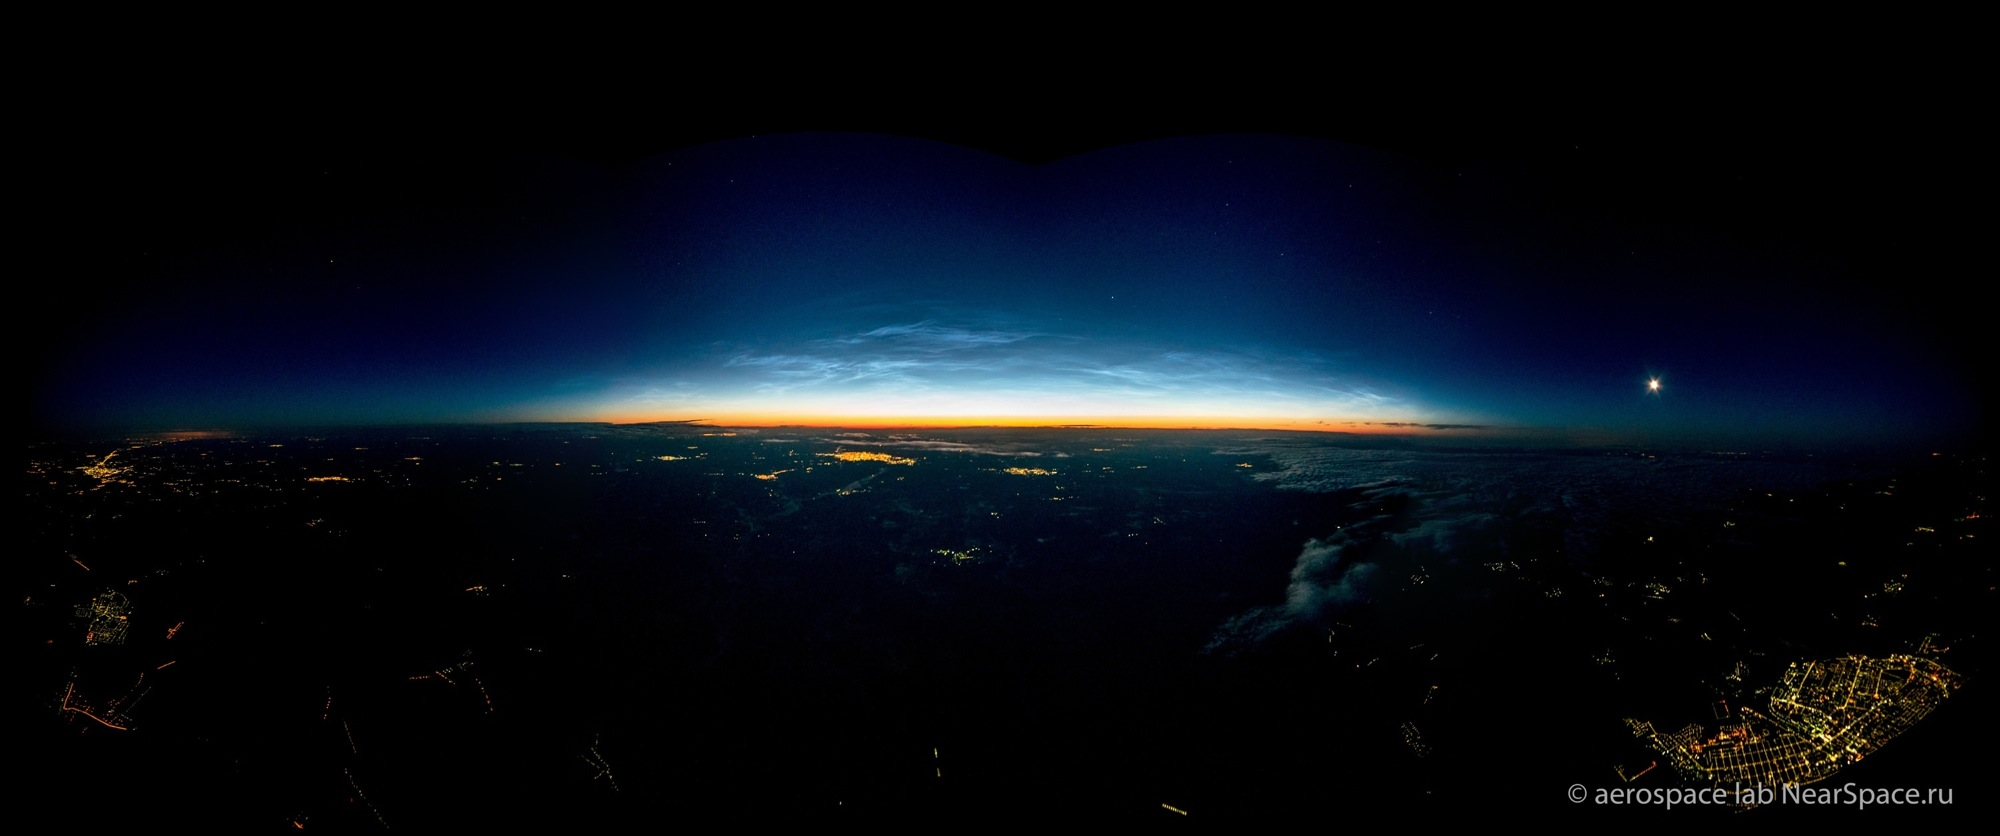 Noctilucent clouds photographed from a balloon above the Moscow area in July 2018 (Photo: Moscow Aerospace Laboratory)